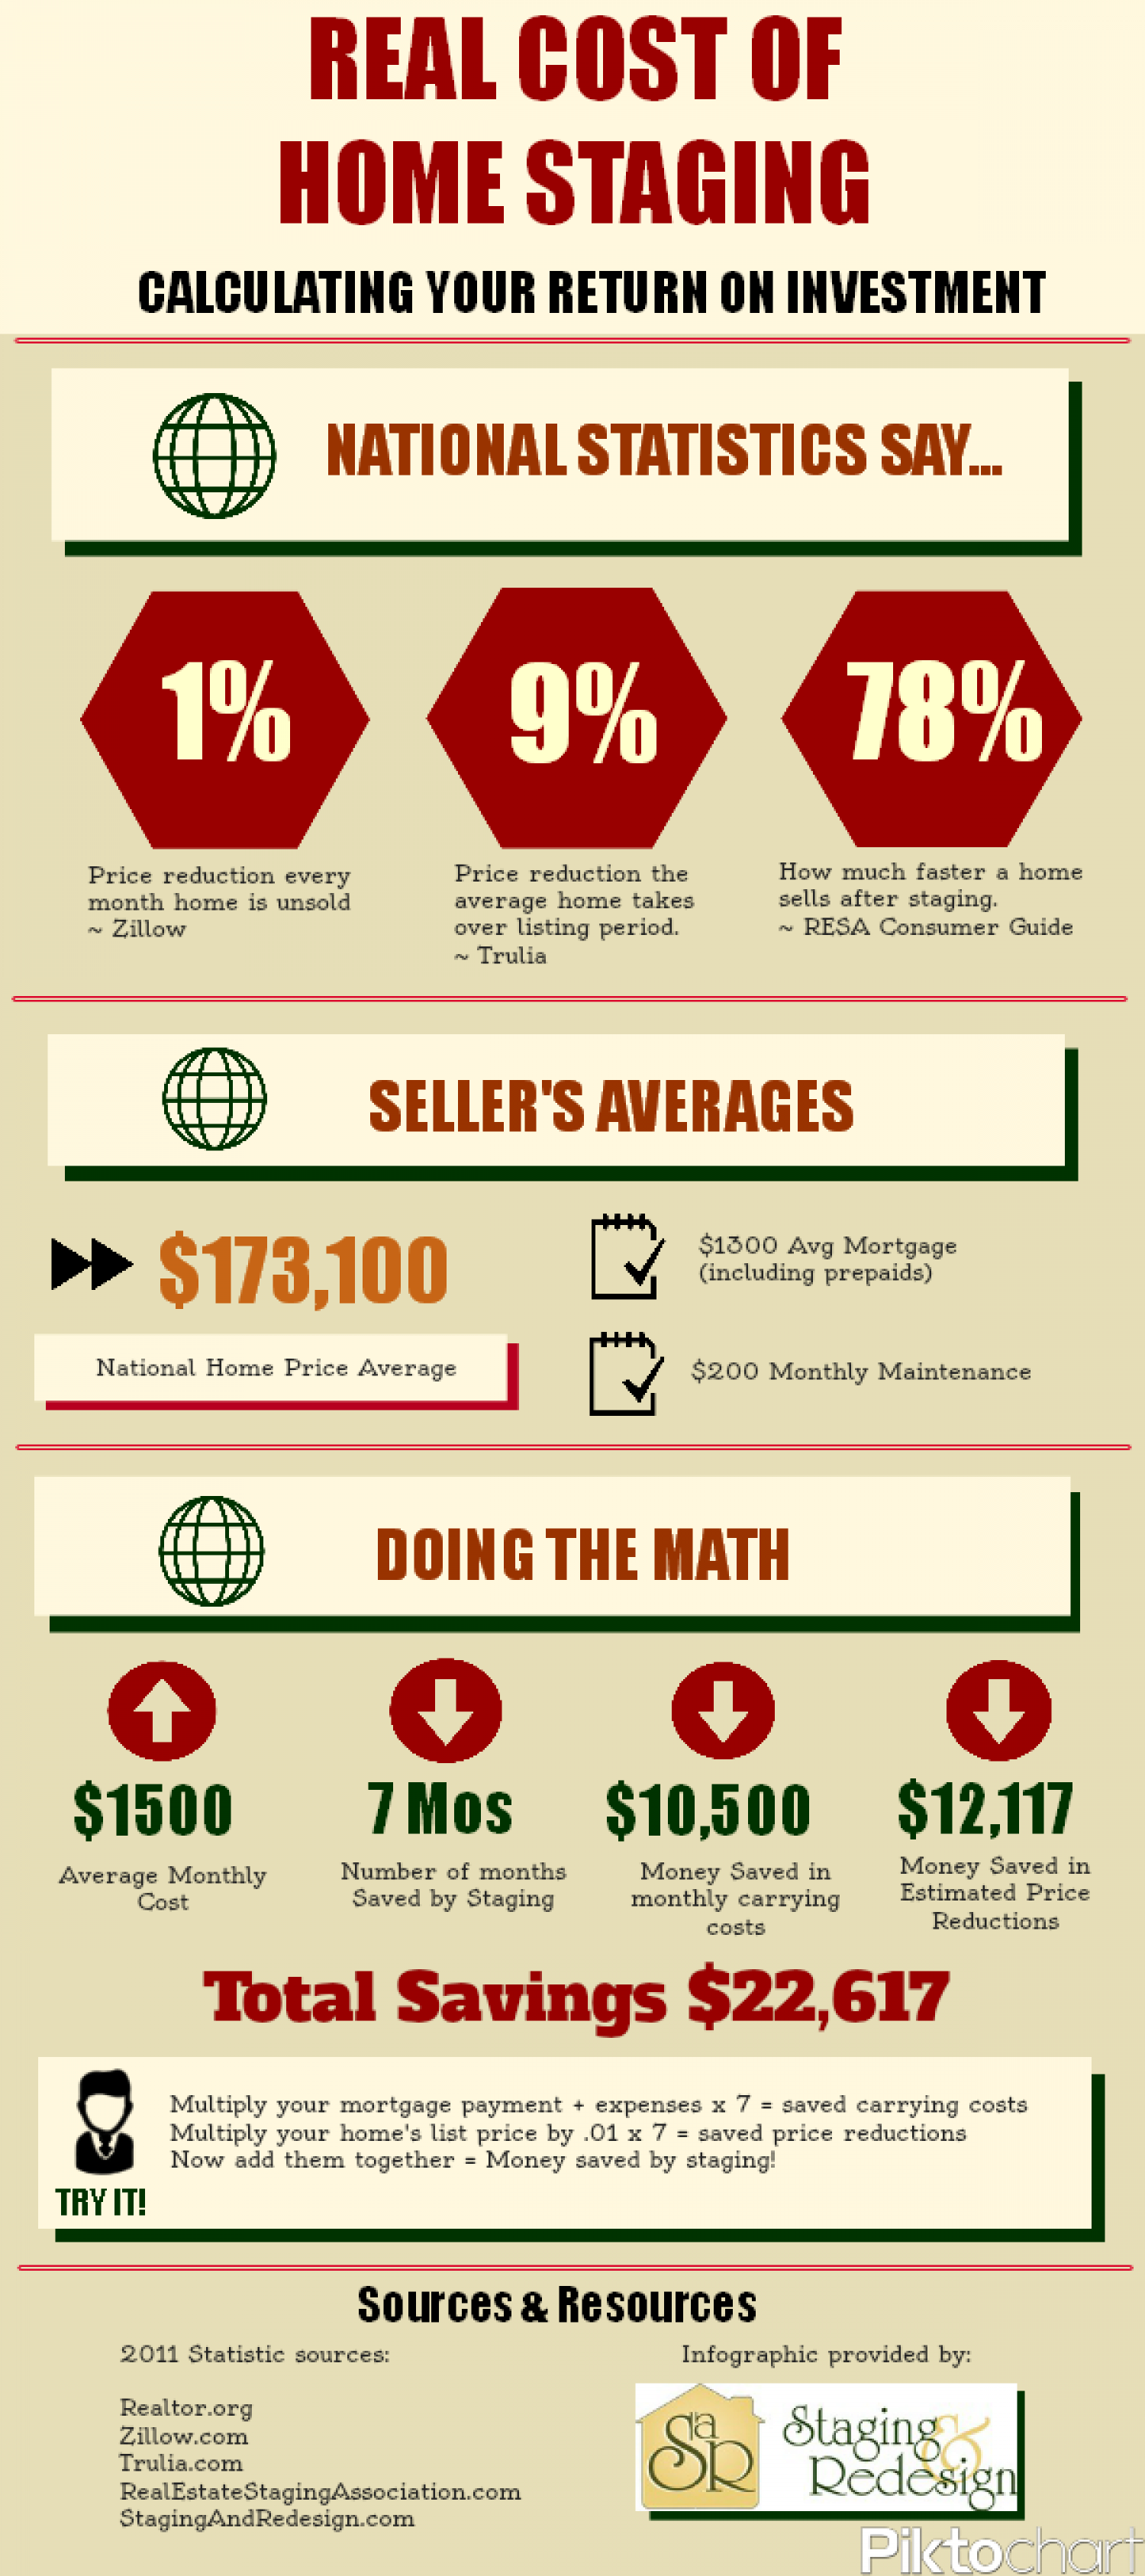 Real Cost of Home Staging Infographic